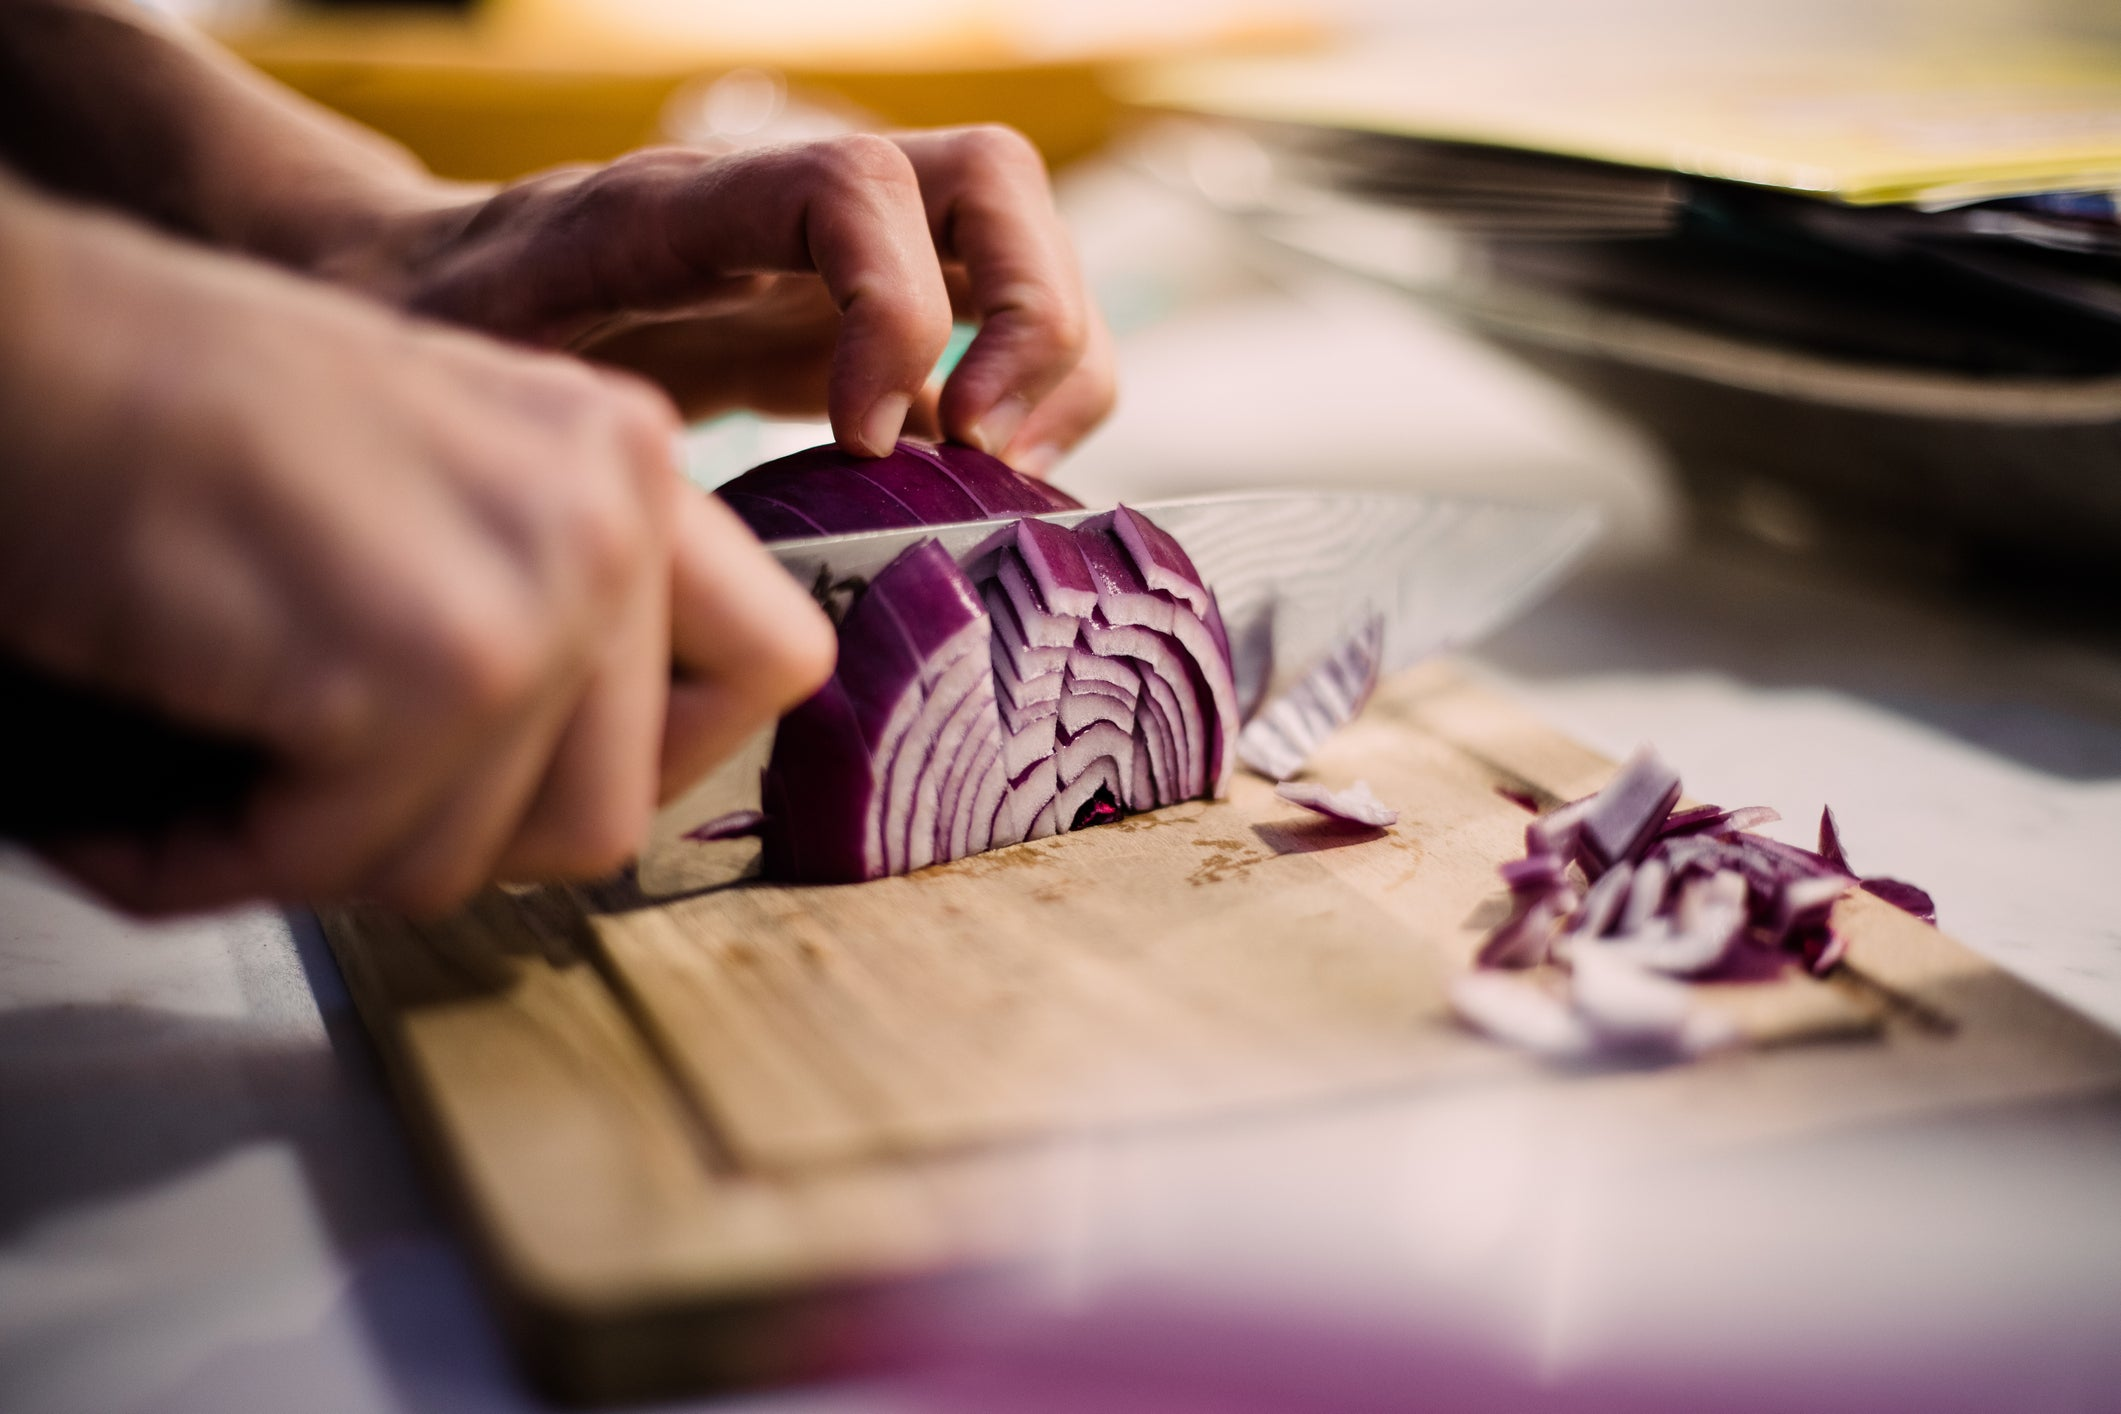 Cutting onion with chefs knife